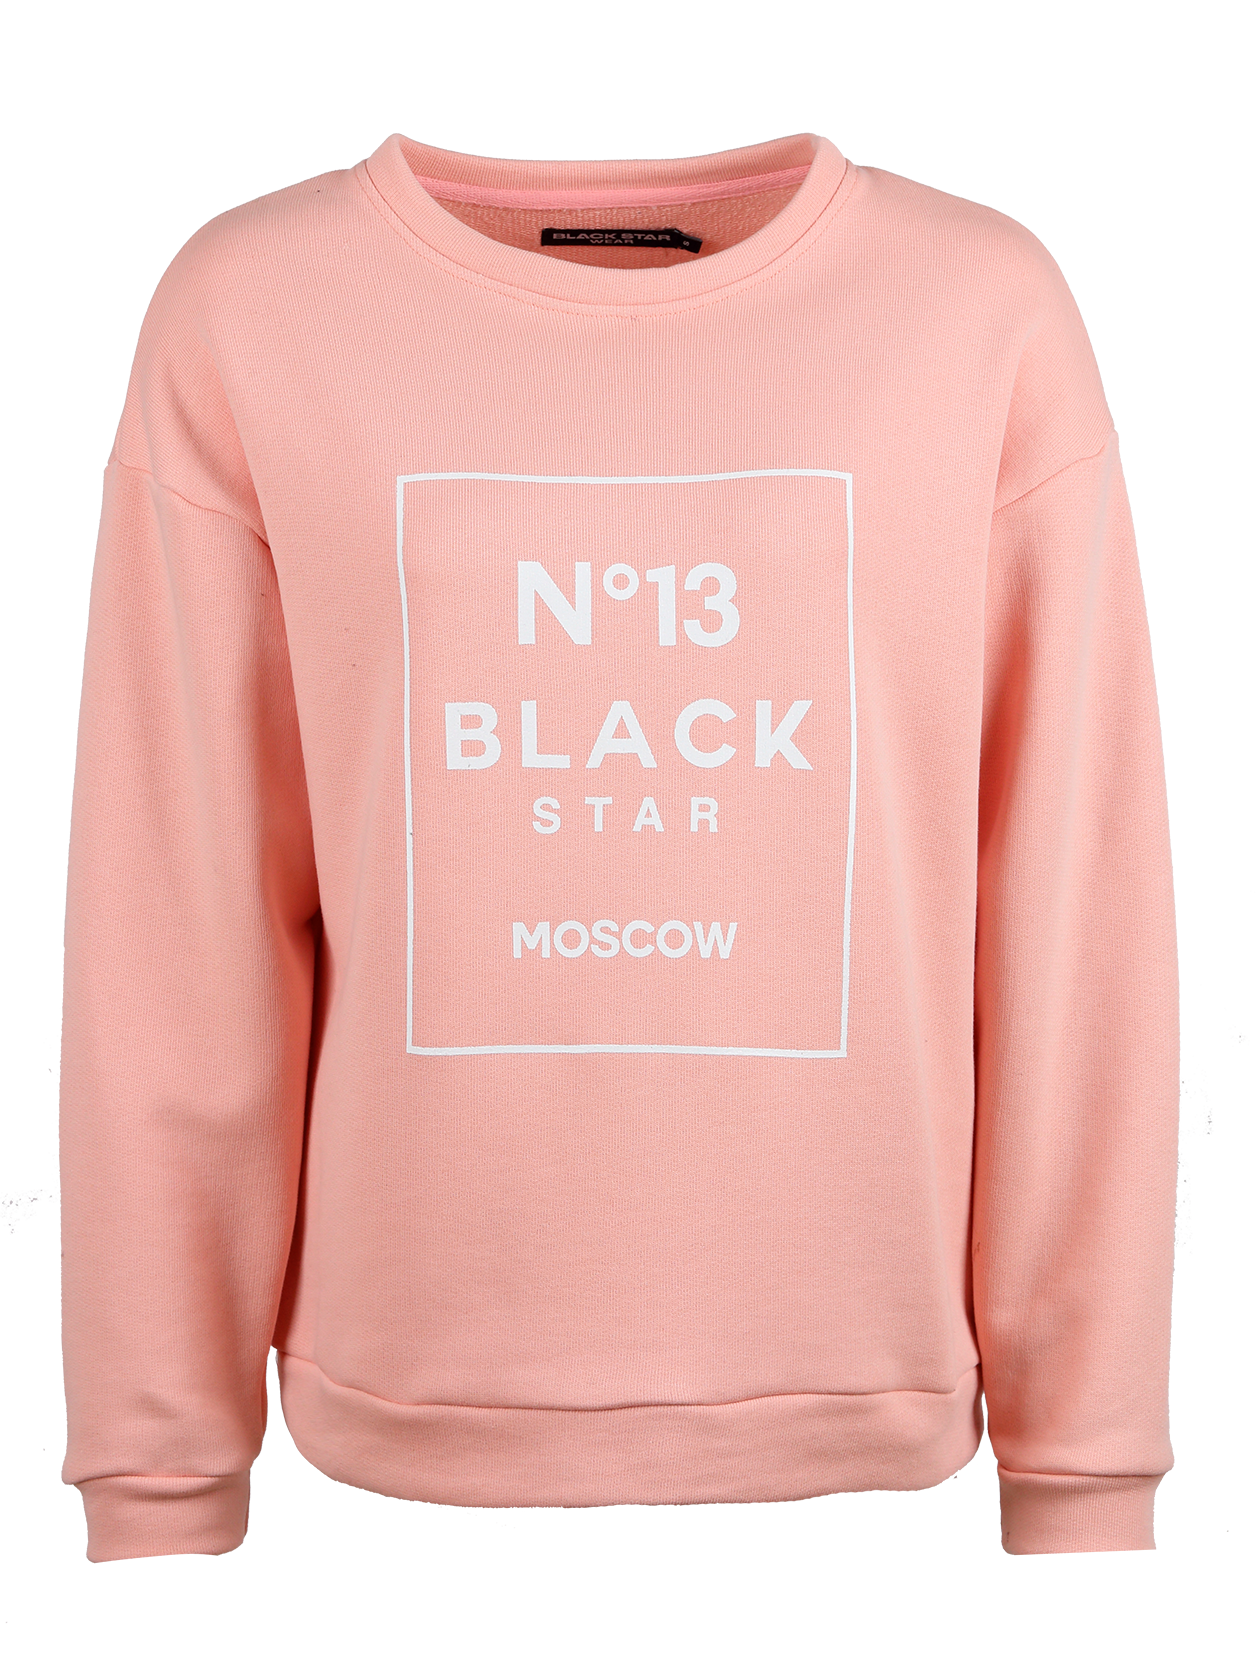 Womens sweatshirt №13 Black StarWomens sweatshirt by Black Star Wear. Made out of footer - comfy and soft. №13 Black Star Moscow print on the chest. Cuffs, cut and neck made out of elasic band. Avaliable in black and pink colors.<br><br>size: XS<br>color: Pink<br>gender: female